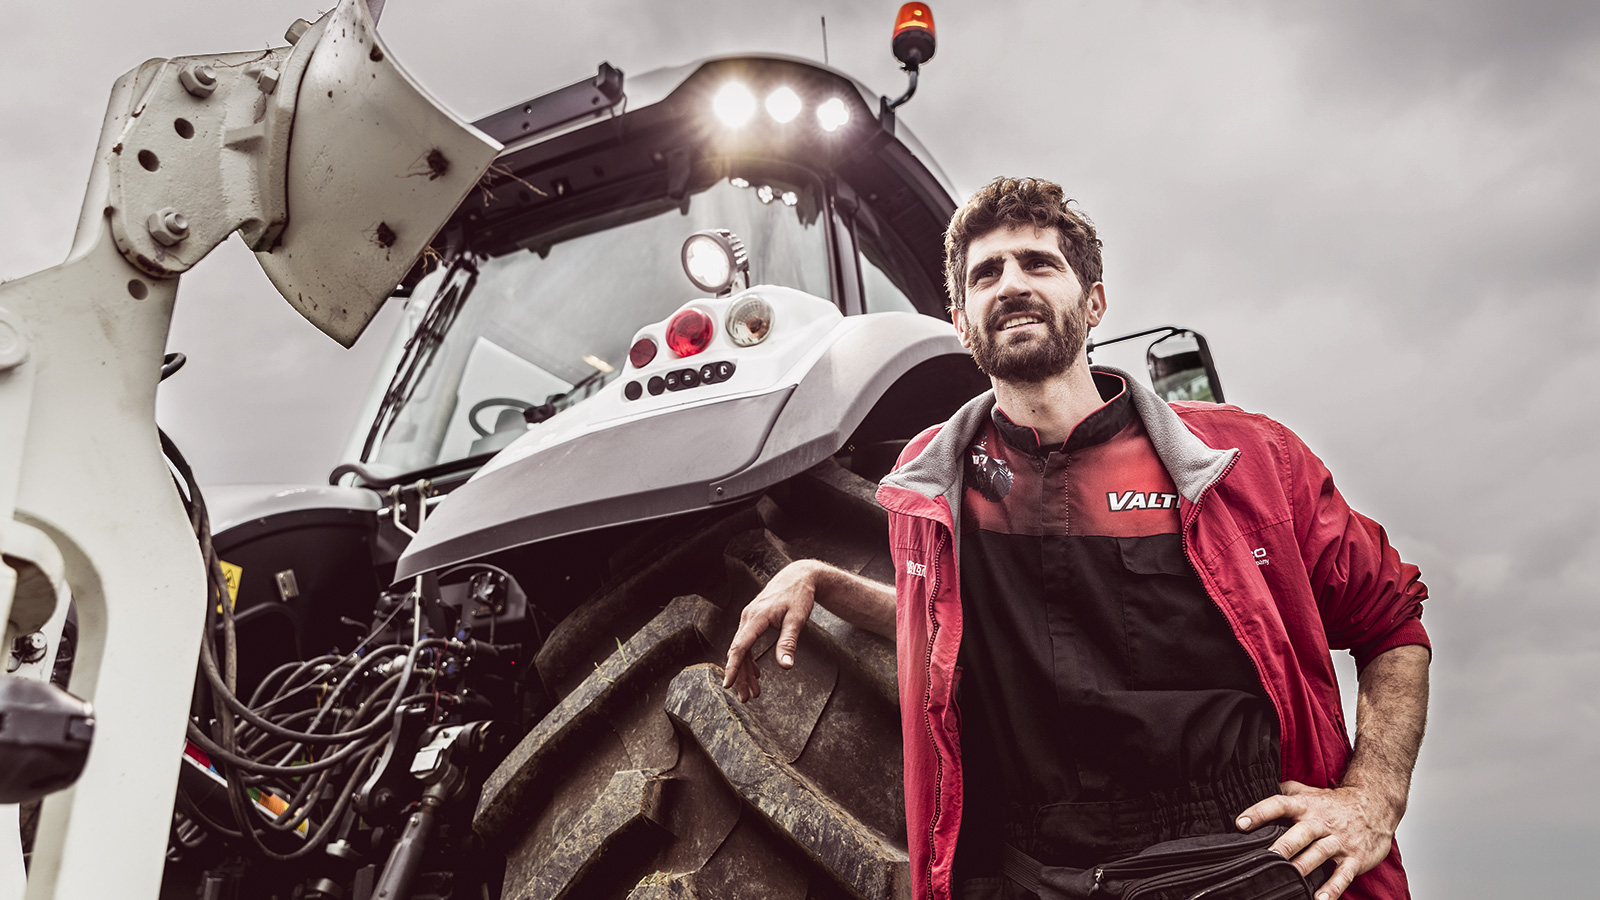 valtra tractor with man standing outside